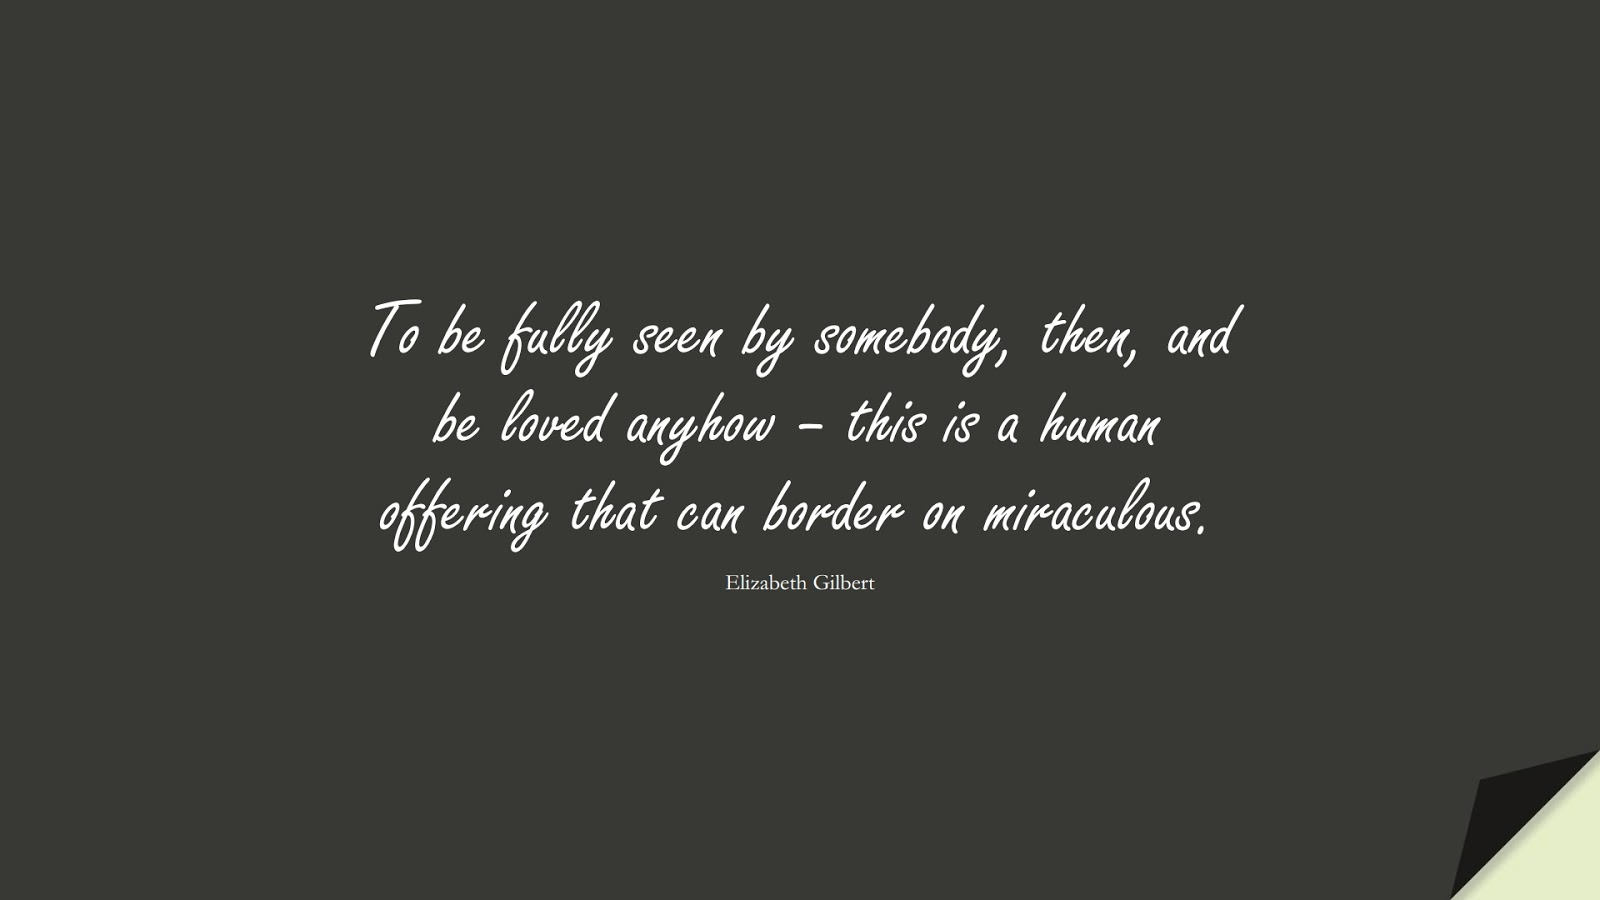 To be fully seen by somebody, then, and be loved anyhow – this is a human offering that can border on miraculous. (Elizabeth Gilbert);  #LoveQuotes